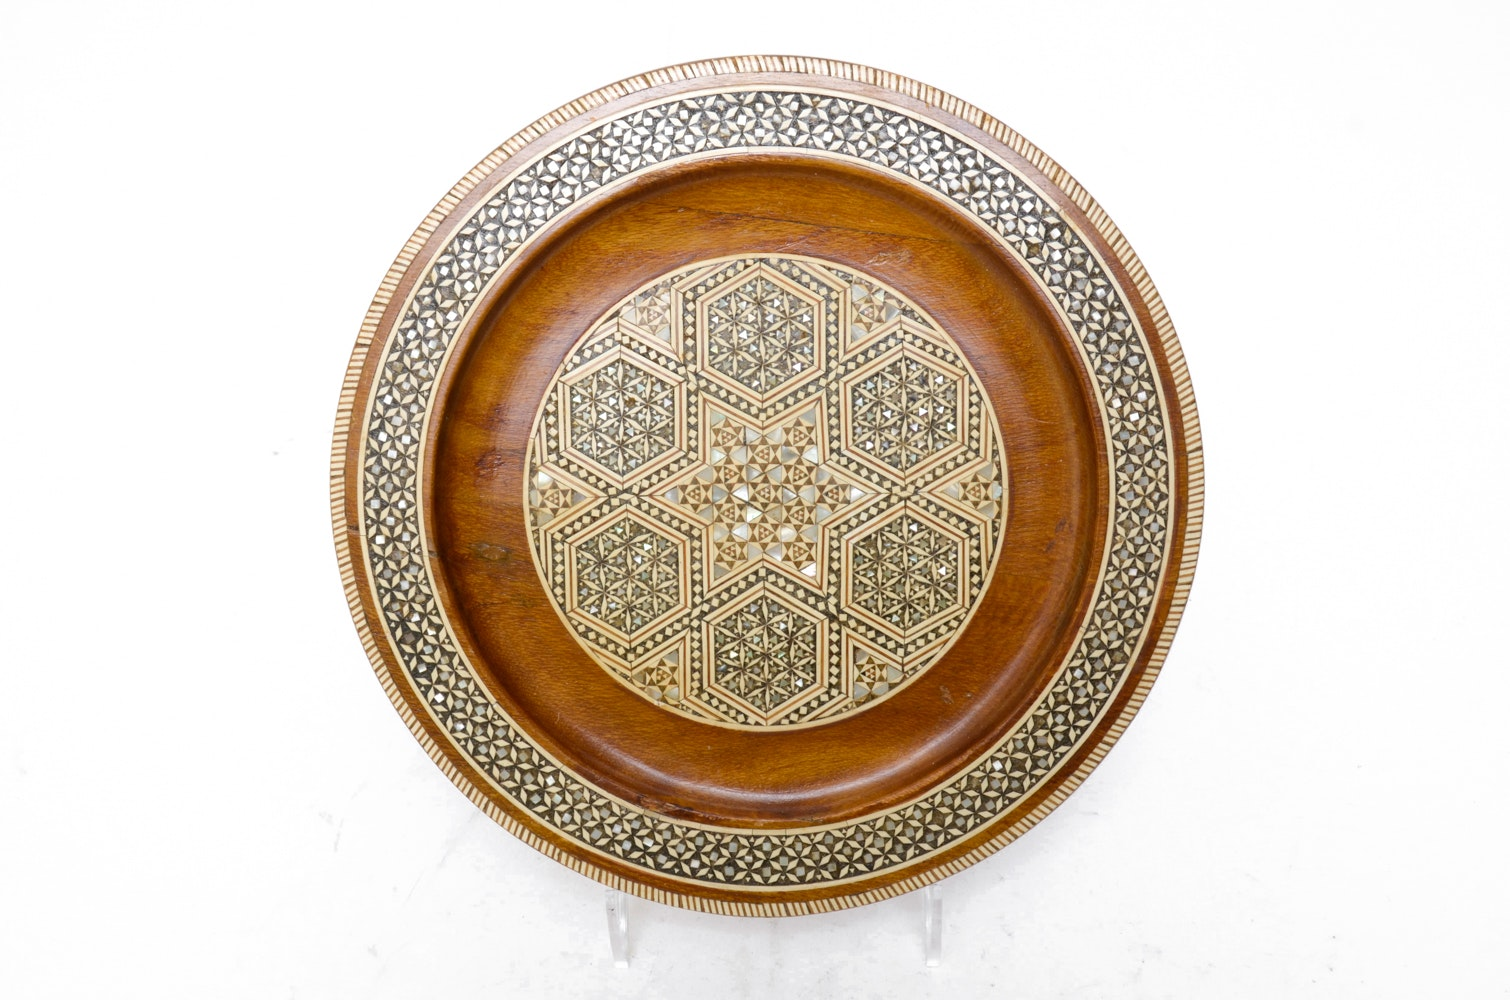 Persian Khatam Mother of Pearl and Bone Inlaid Wooden Plate